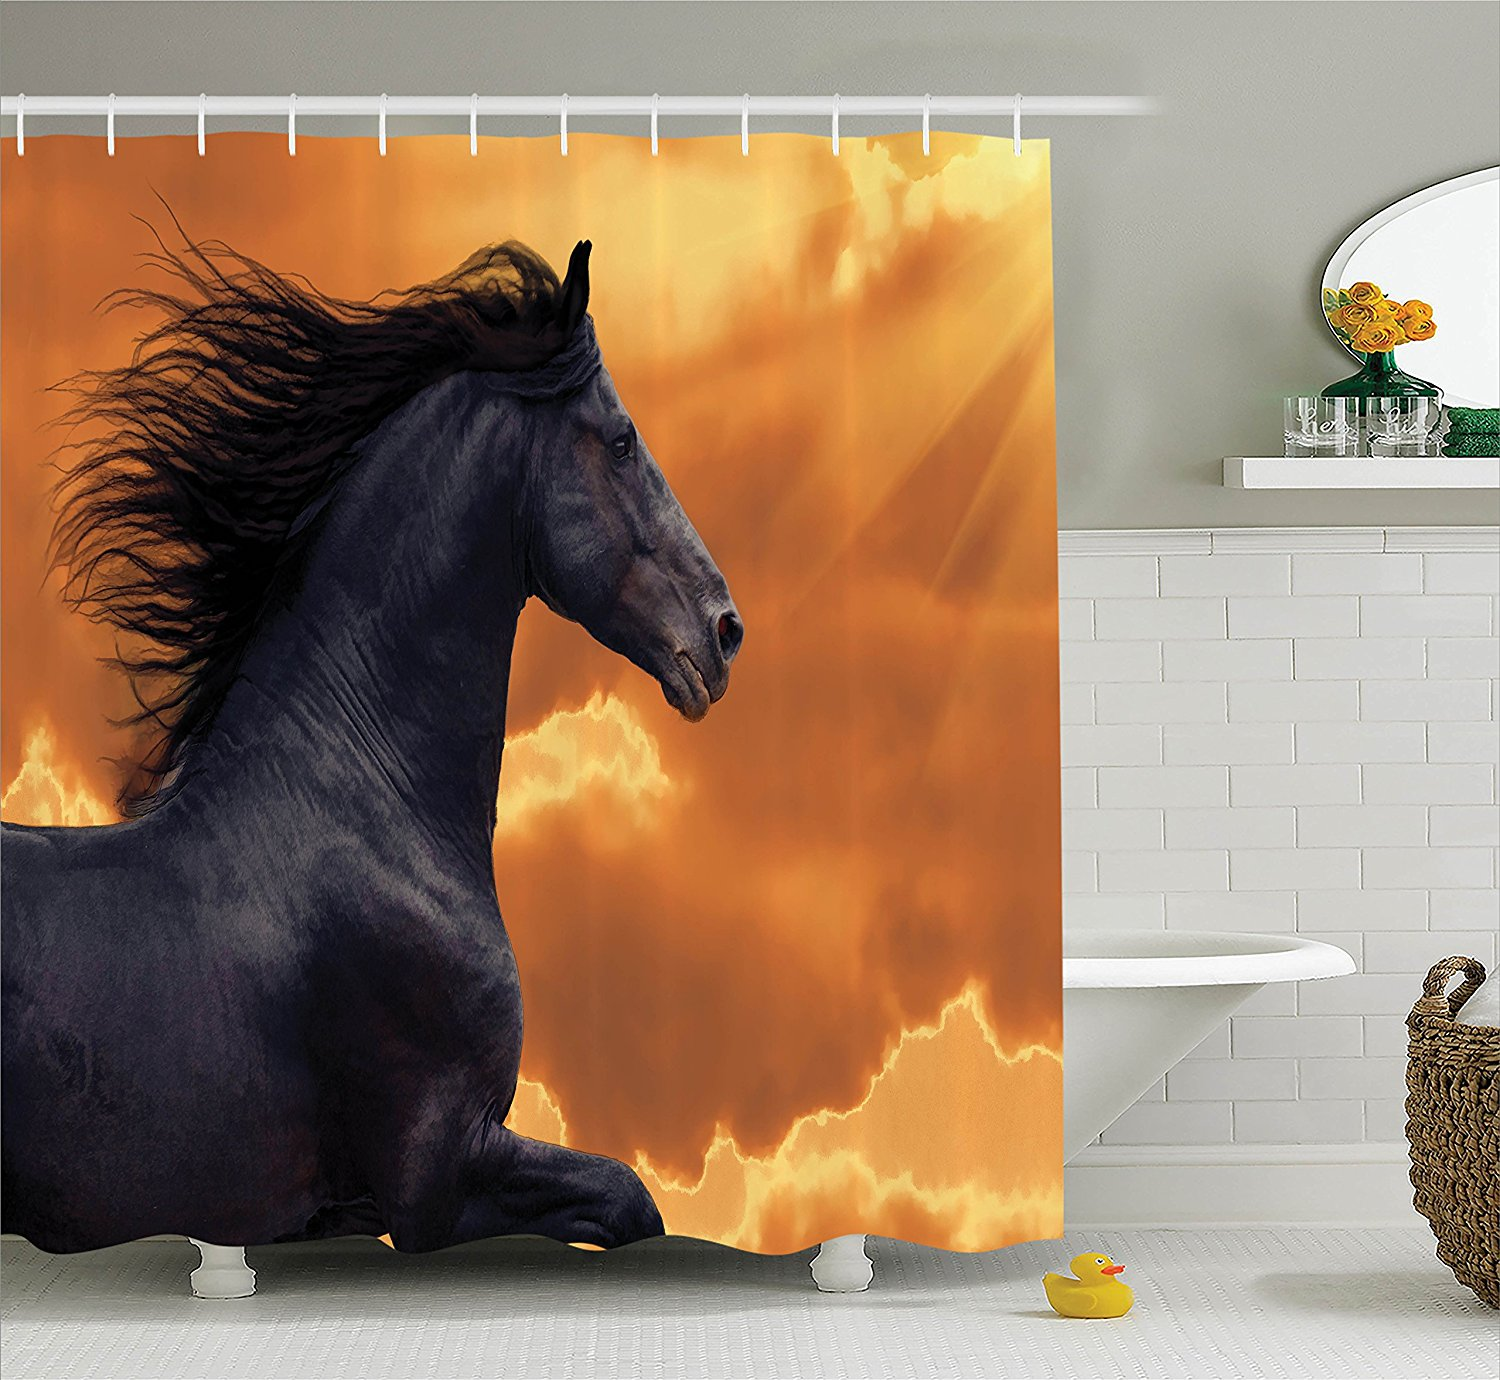 Horse Bathroom Accessories Promotion Shop for Promotional Horse